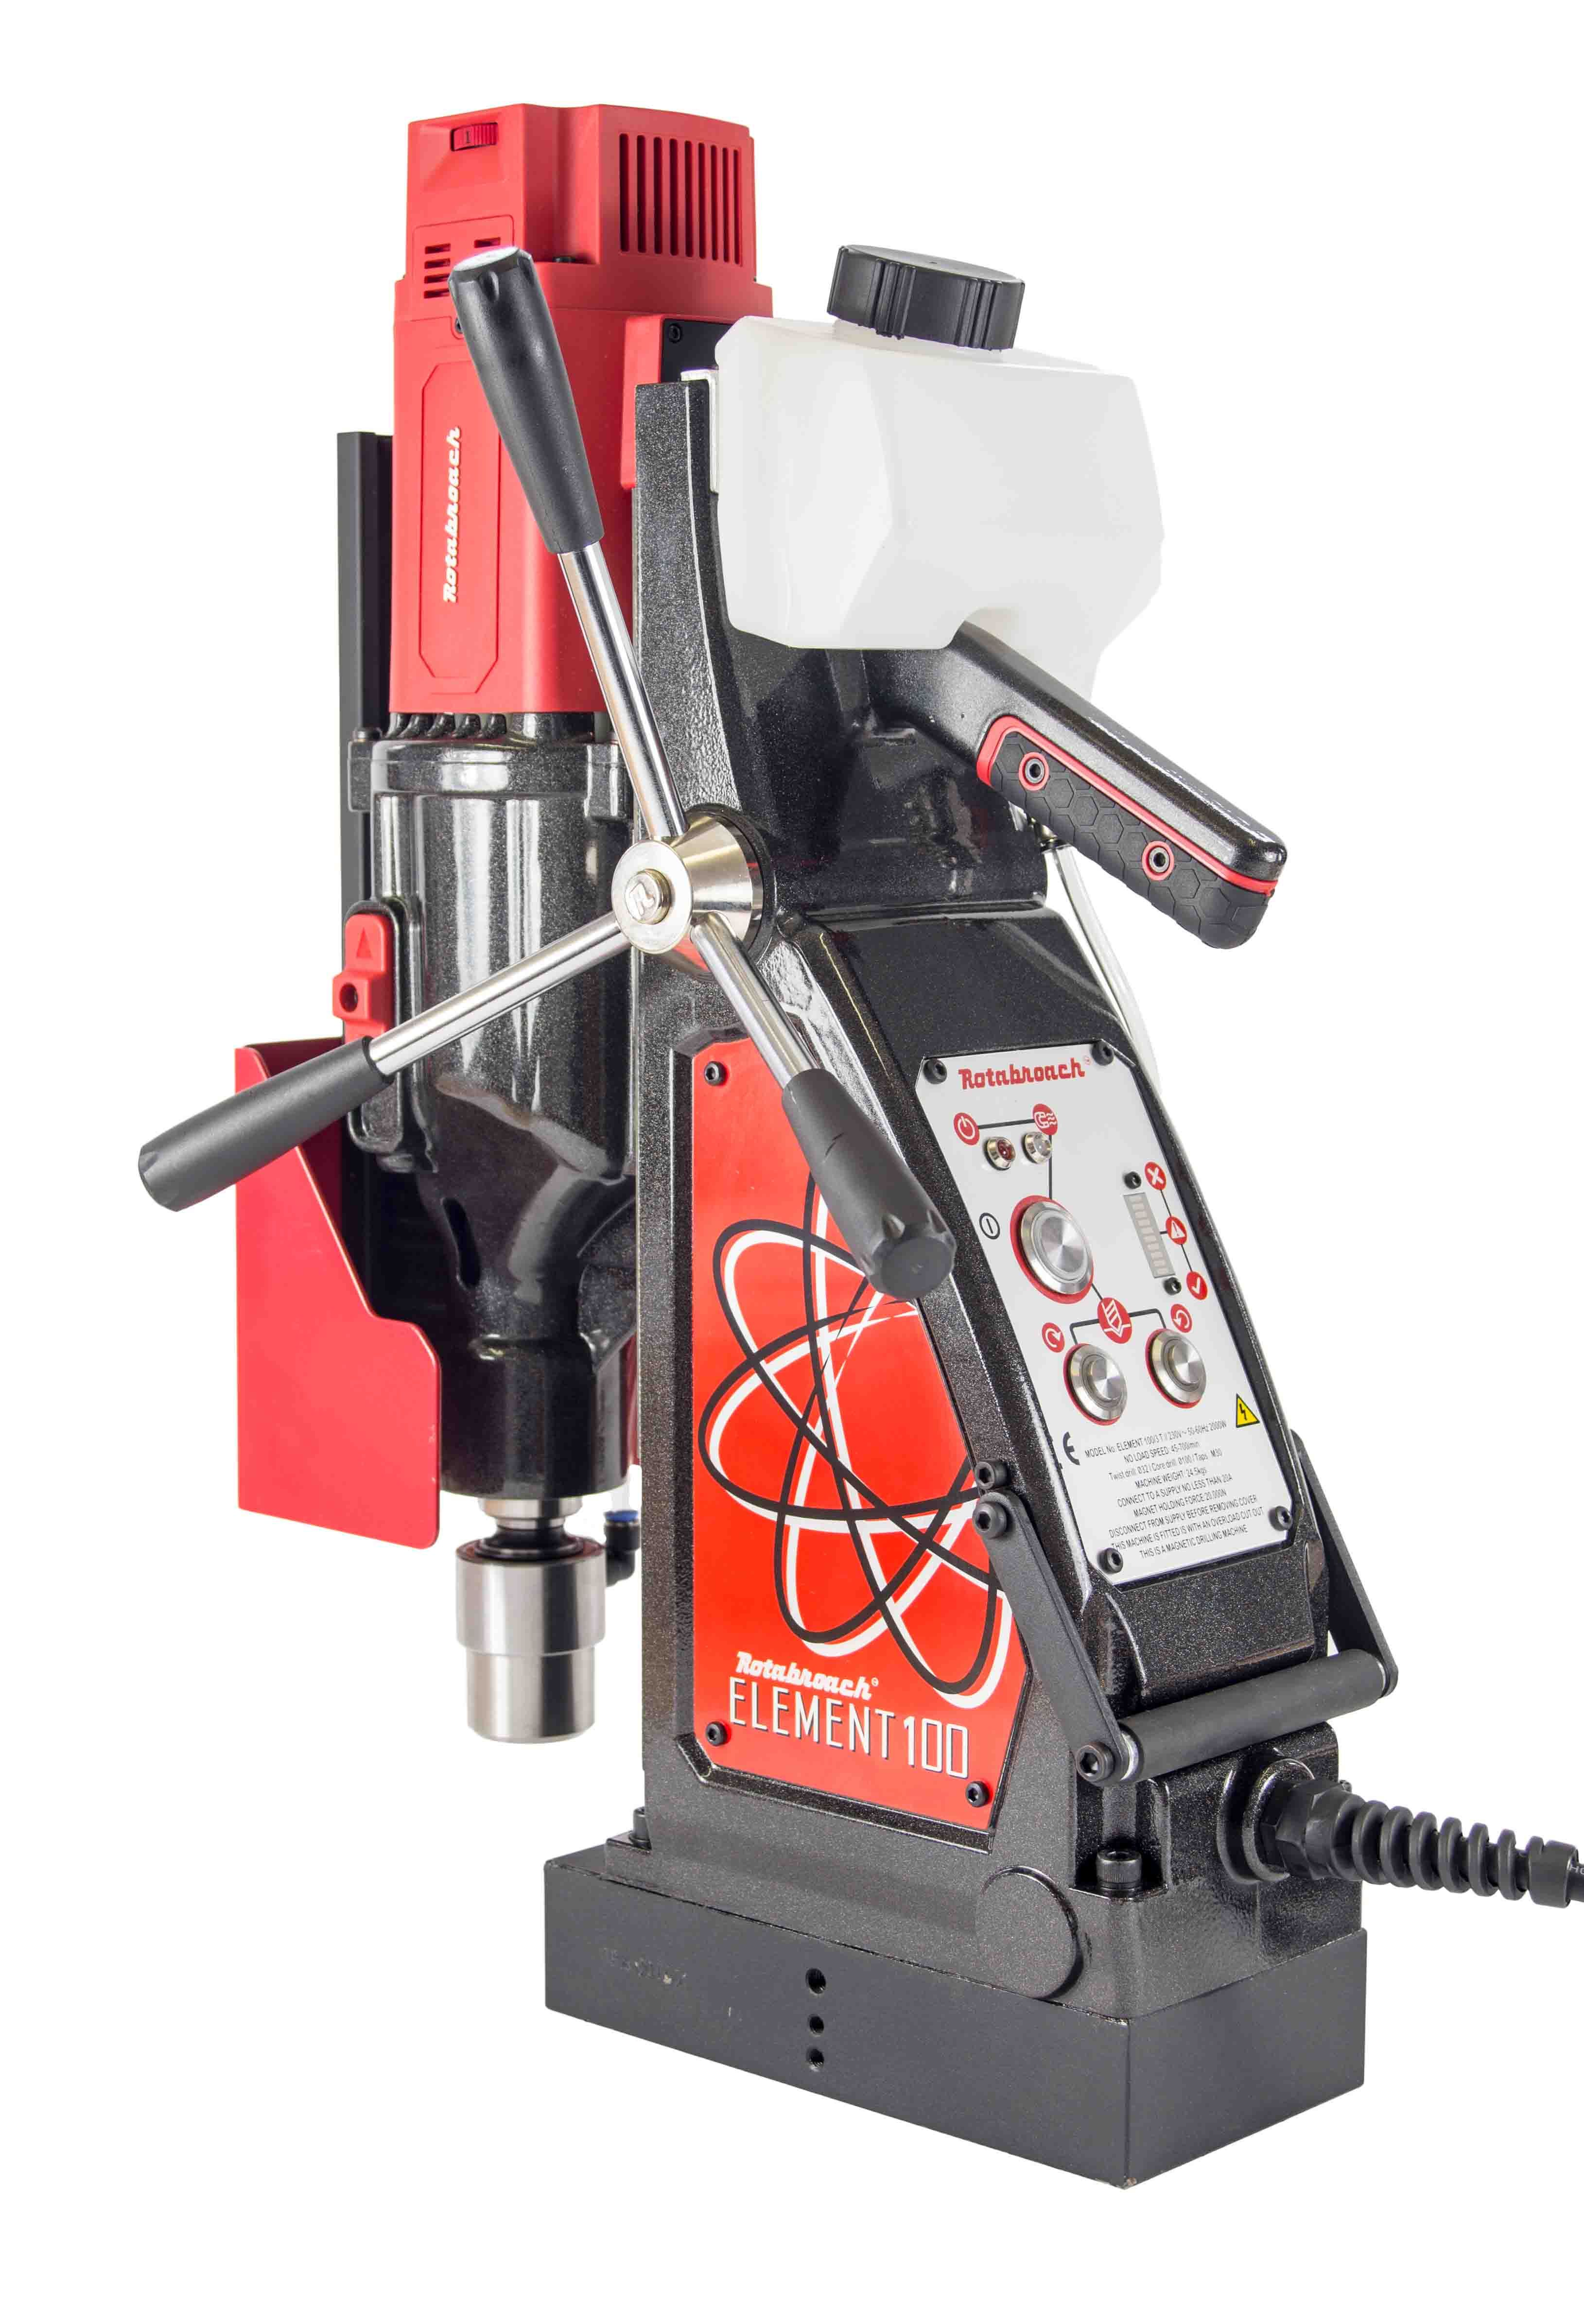 Rotabroach Element 100 2000w 100mm Magnetic Drill